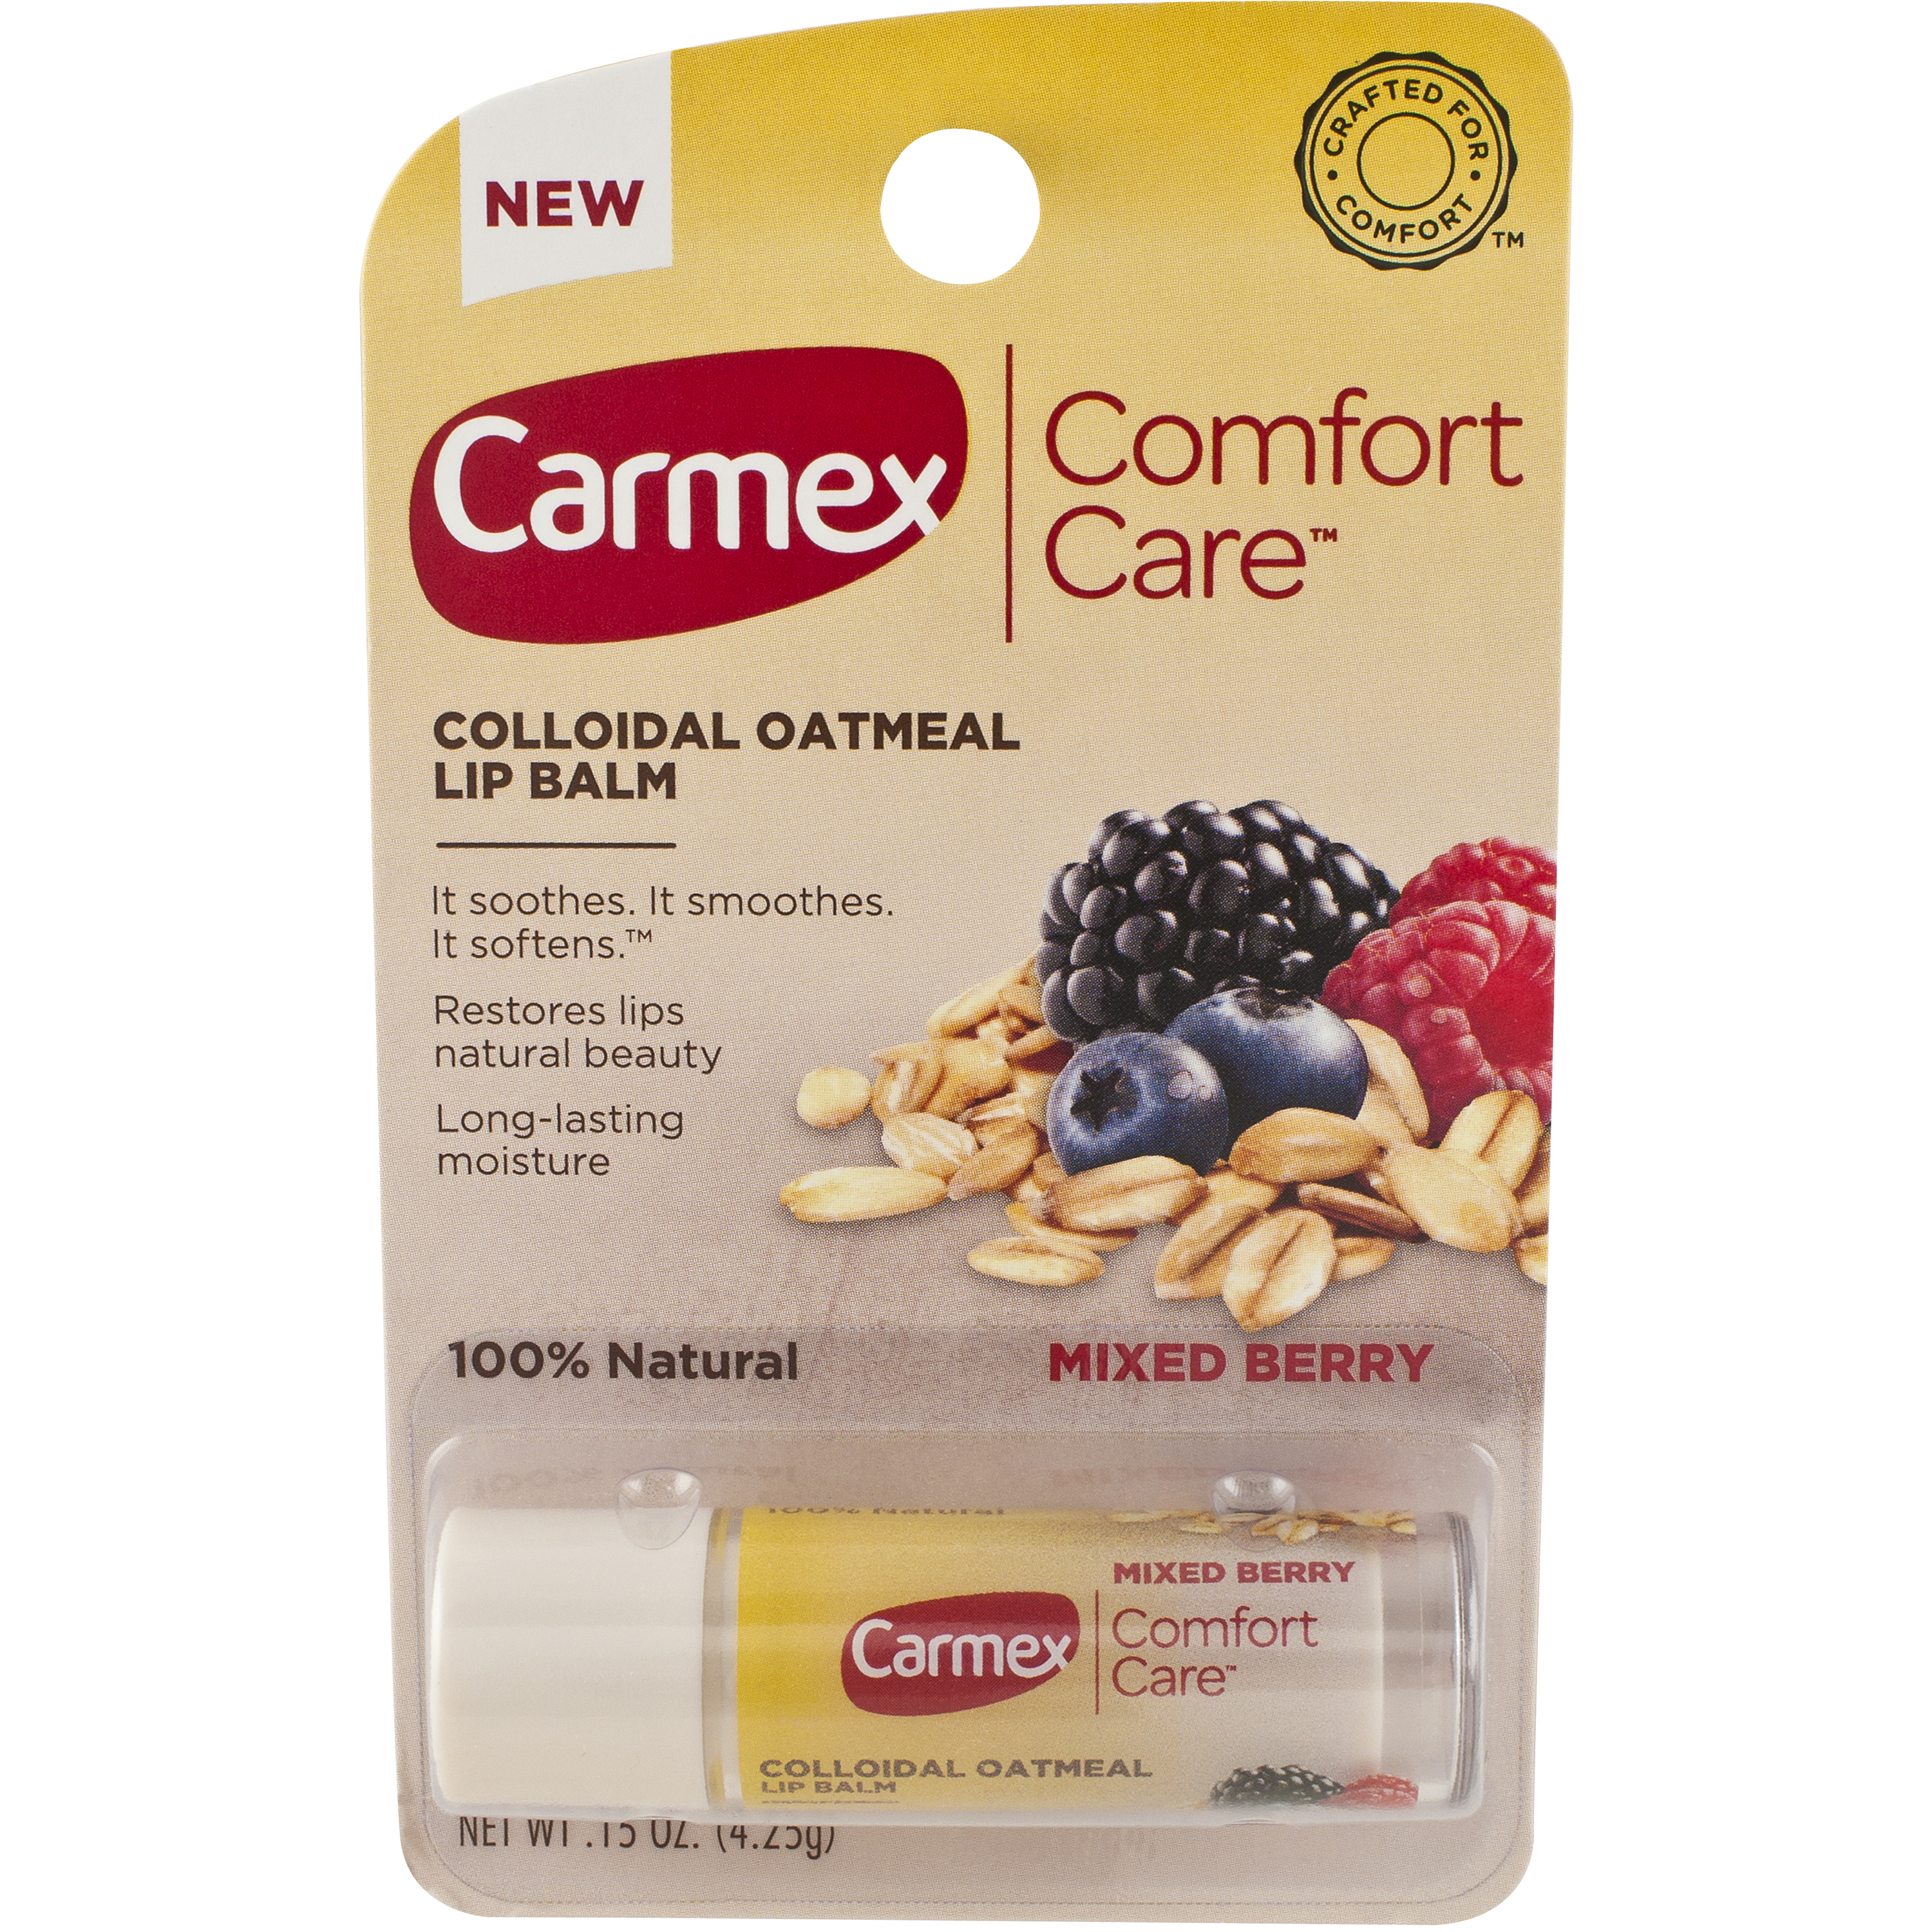 Carmex Comfort Care™ Lip Balm helps restore your lips natural beauty by Carma Laboratories, Inc.